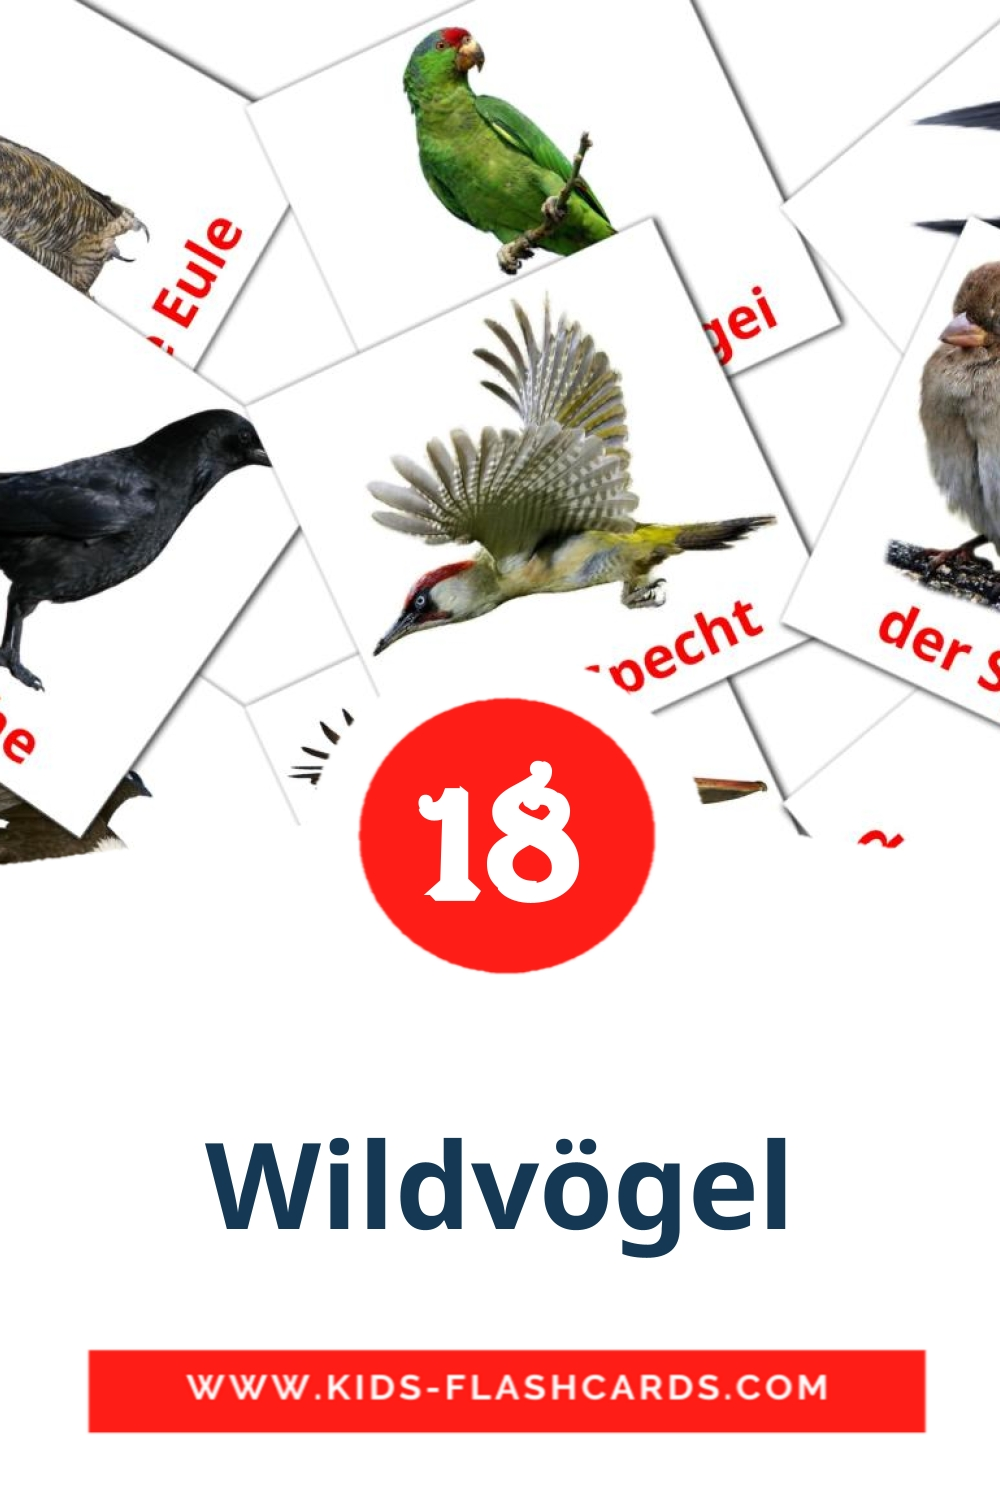 17 Die Wildvögel  Picture Cards for Kindergarden in german